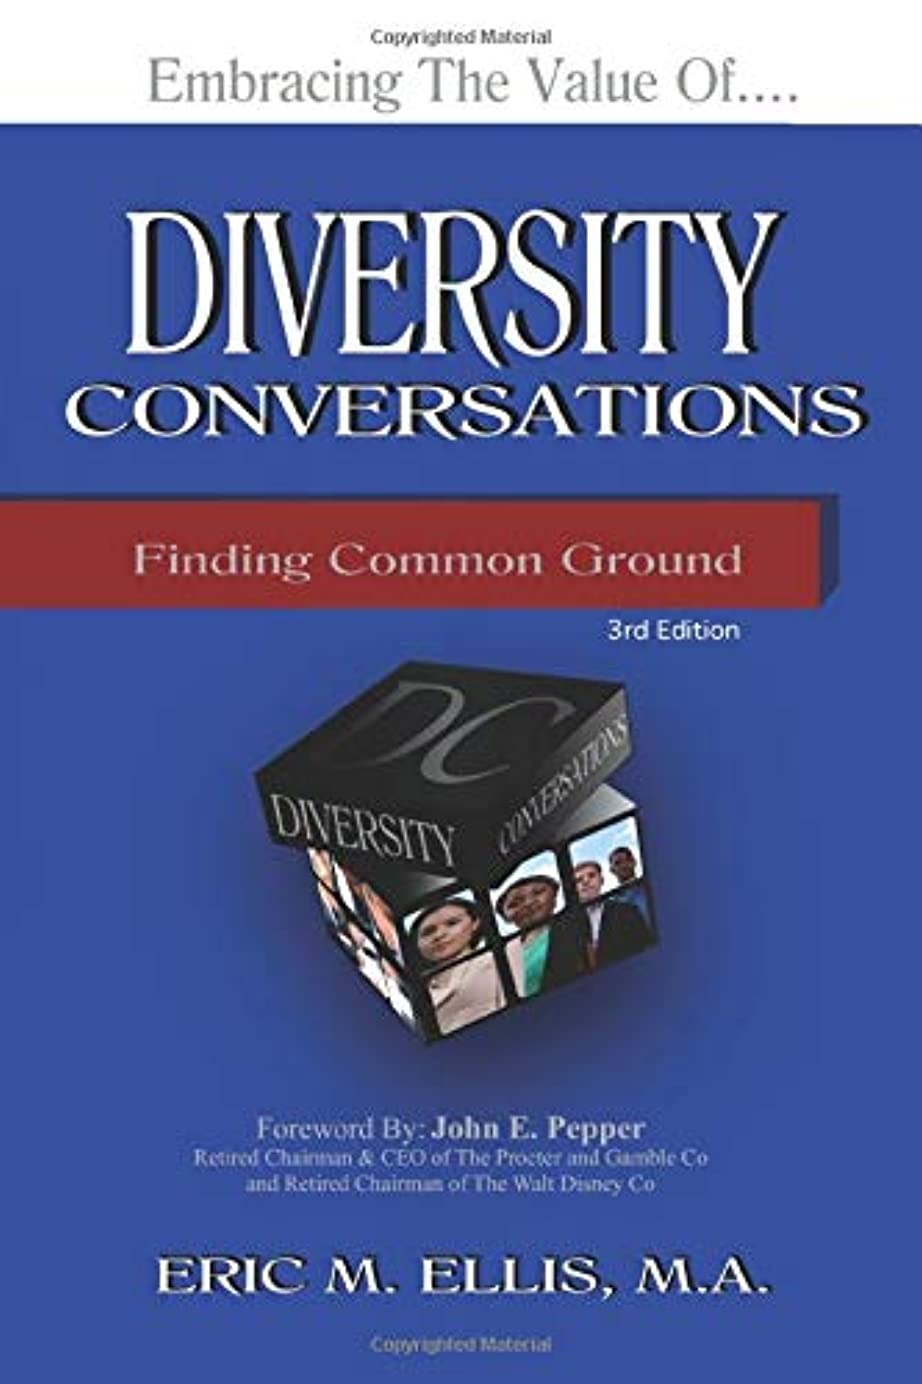 Diversity Conversations: Finding Common Ground